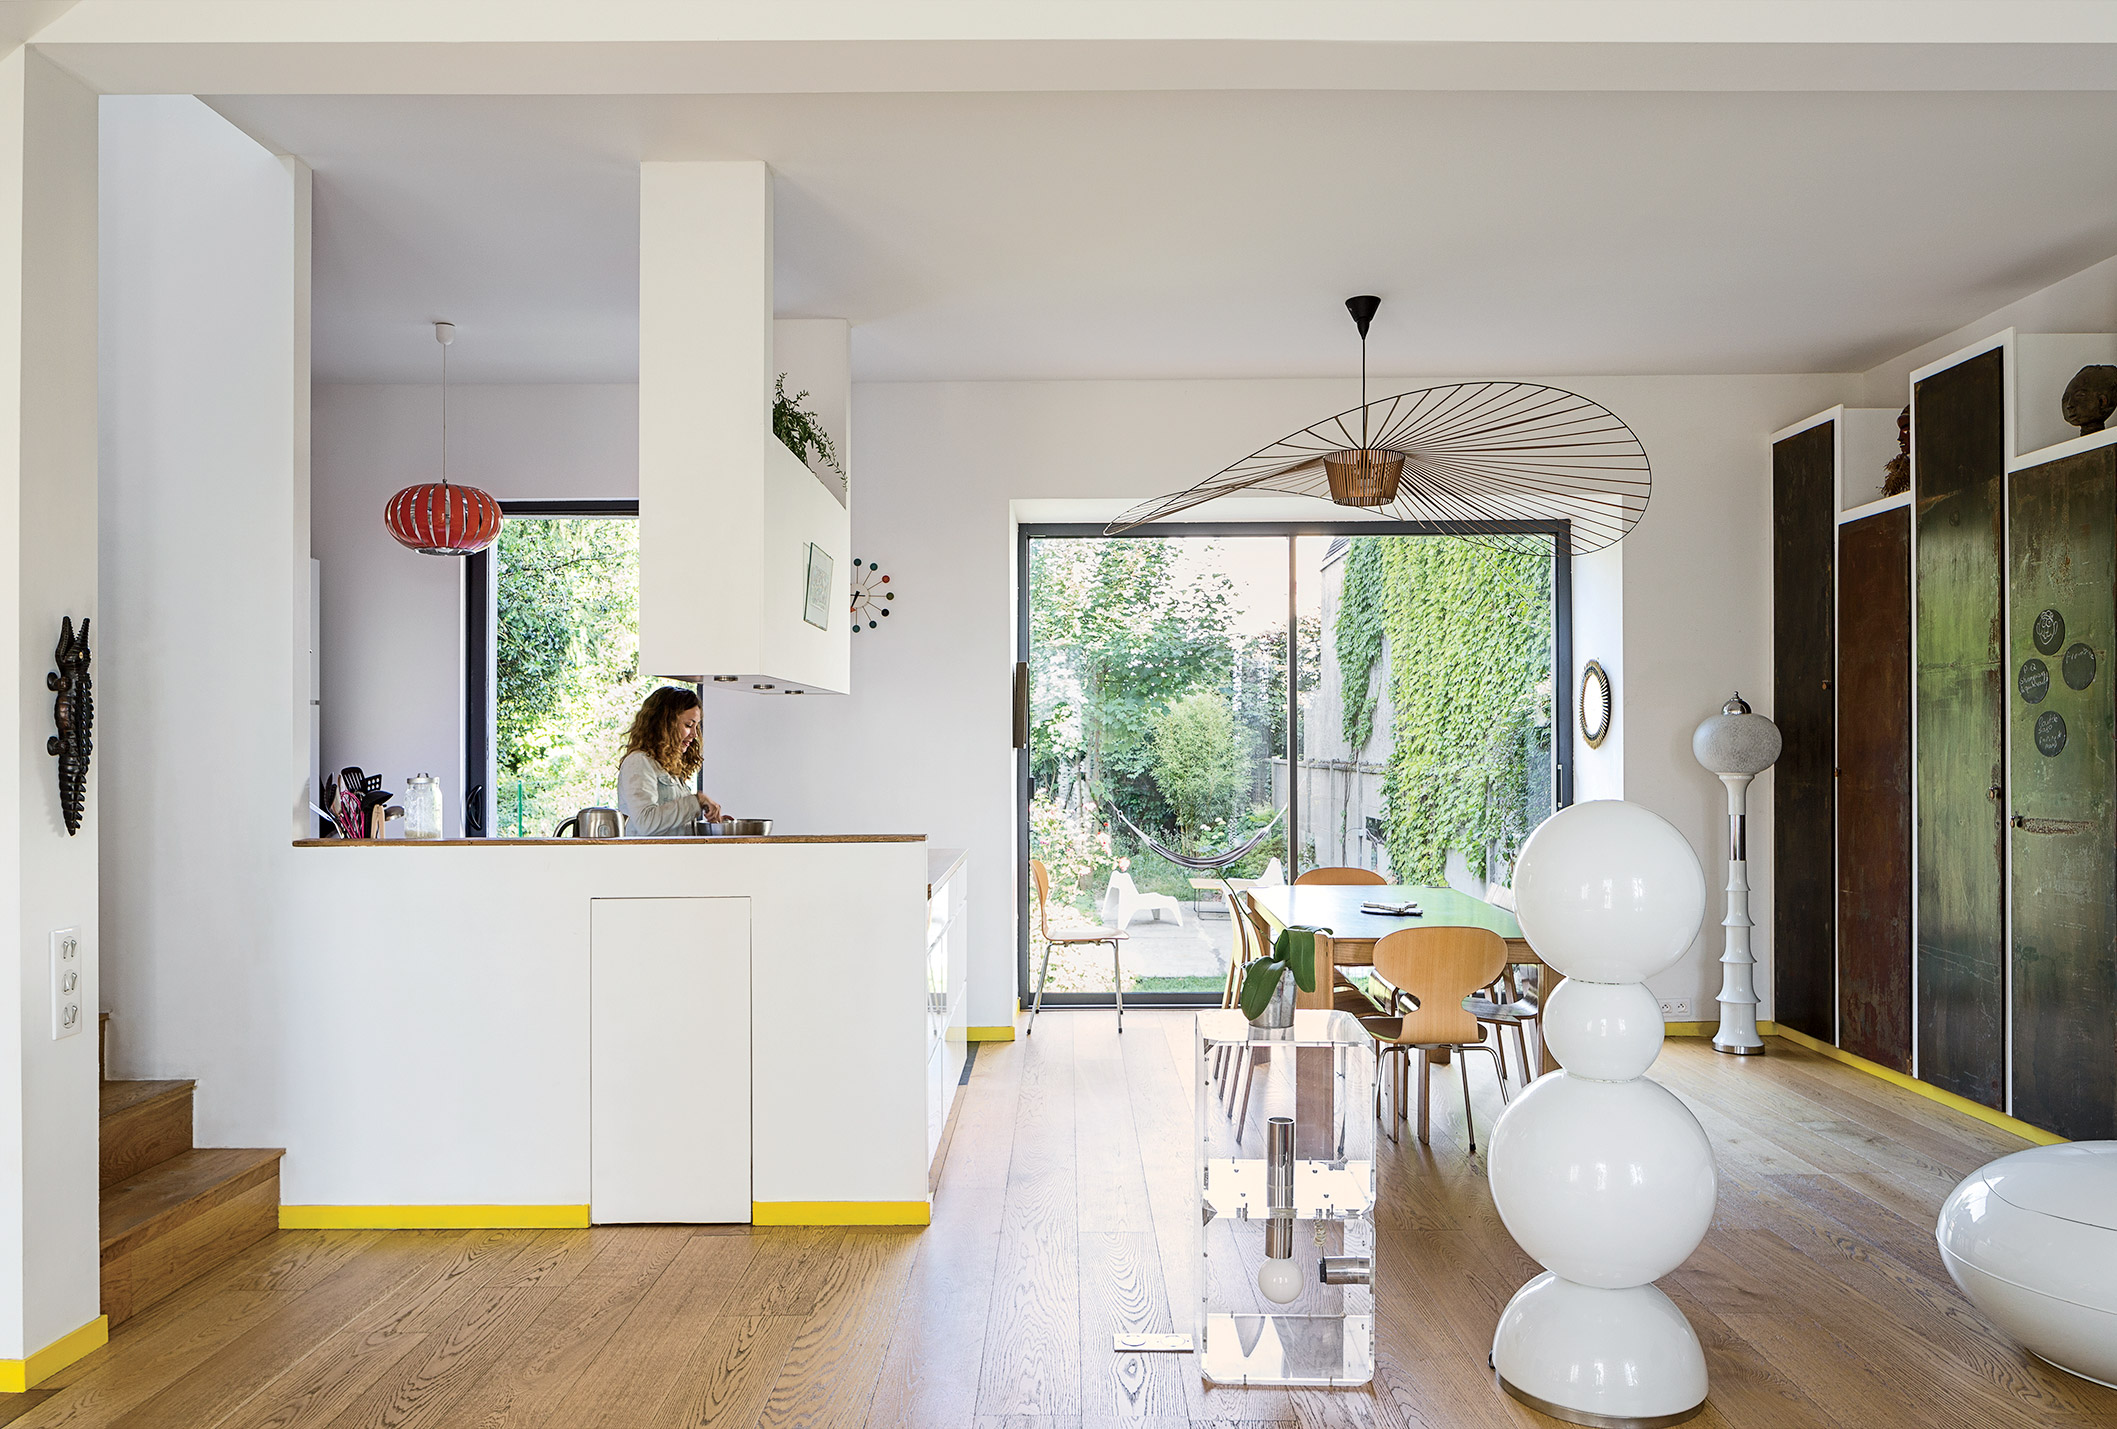 modern prefab home in Paris suburb with Vertigo lamp by Constance Guisset, Gijs Bakker strip table, and metal panels in the living area